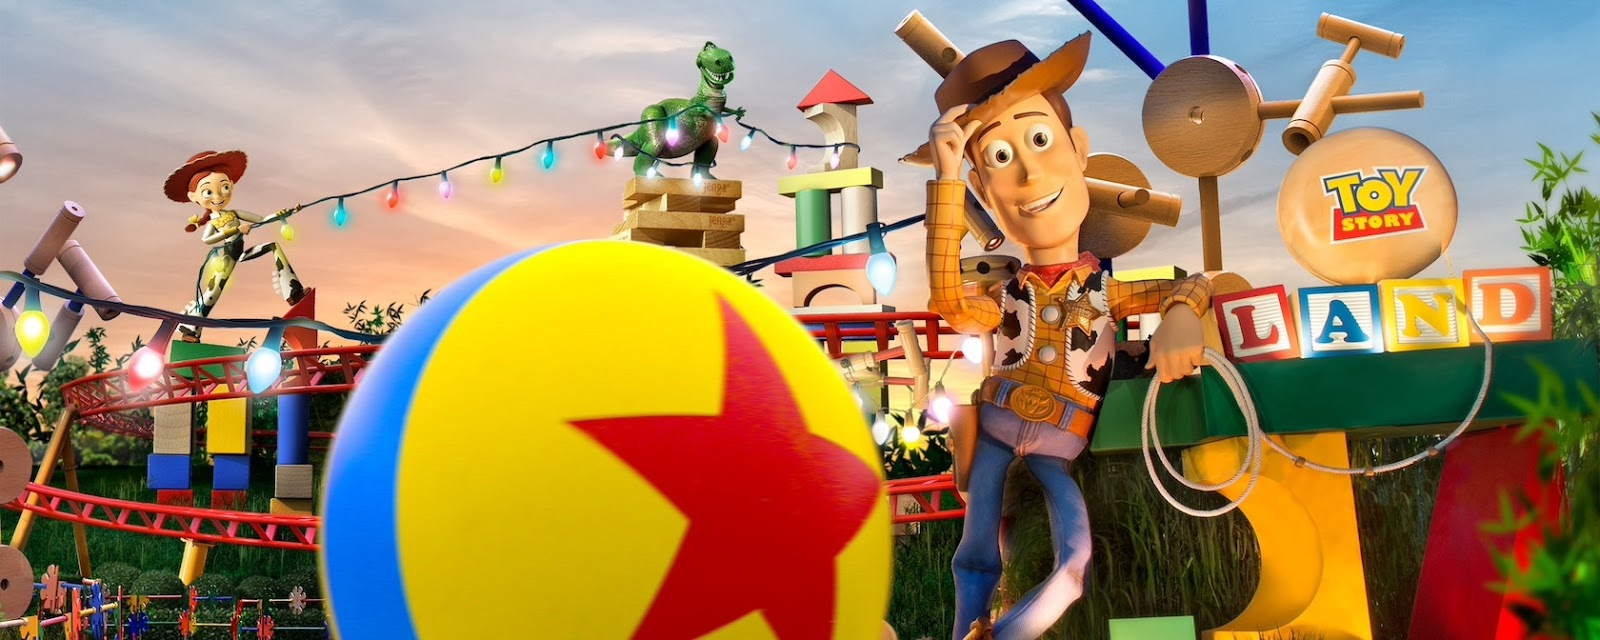 What Is The Followtheball Toy Story Land Promotion Our